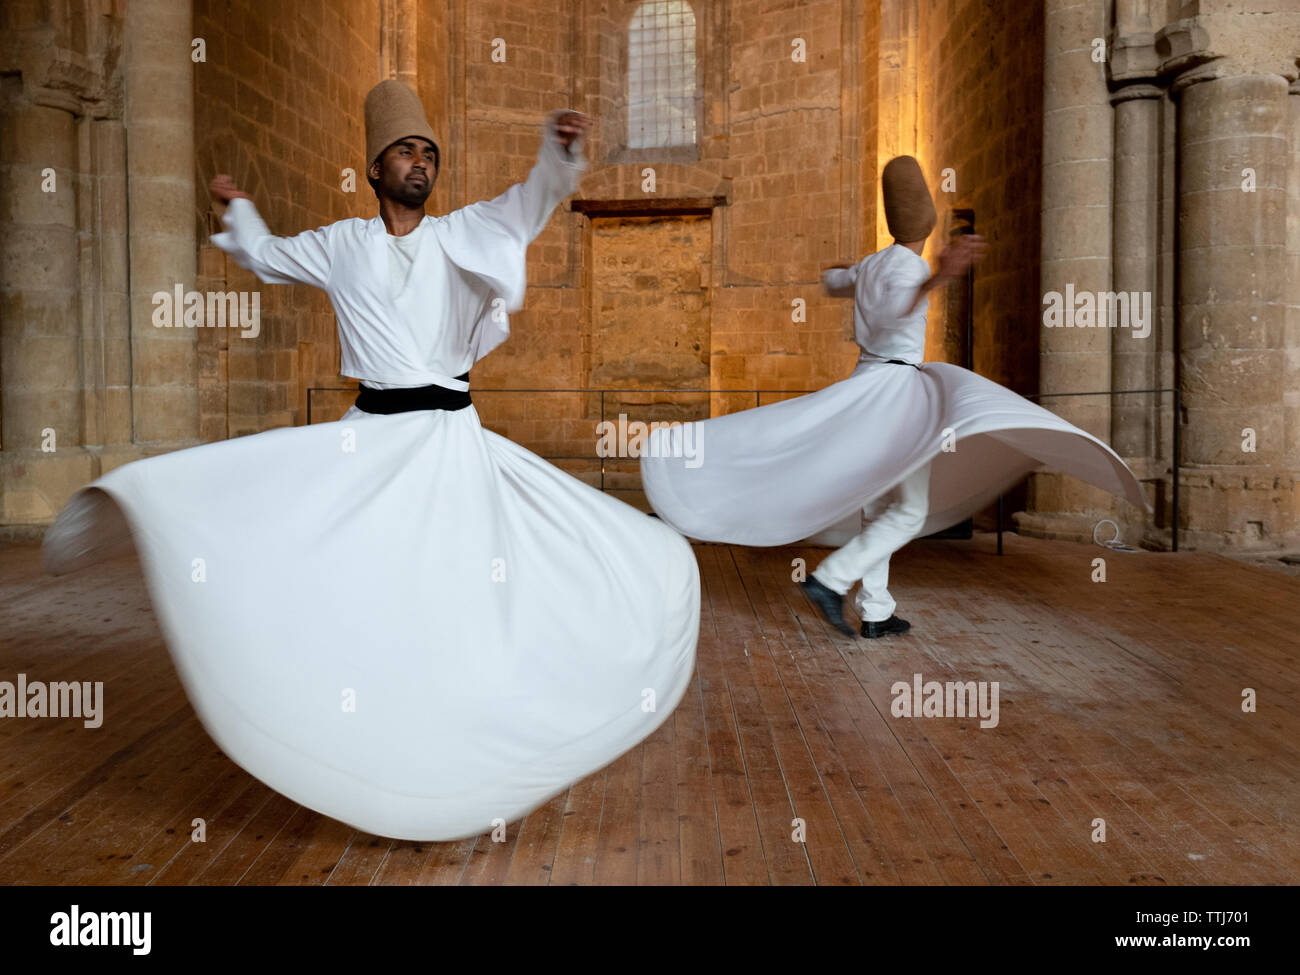 Nicosia, Cyprus, June 5 2019: Group of Dervishes performing the traditional and religious whirling dance or Sufi whirling Stock Photo